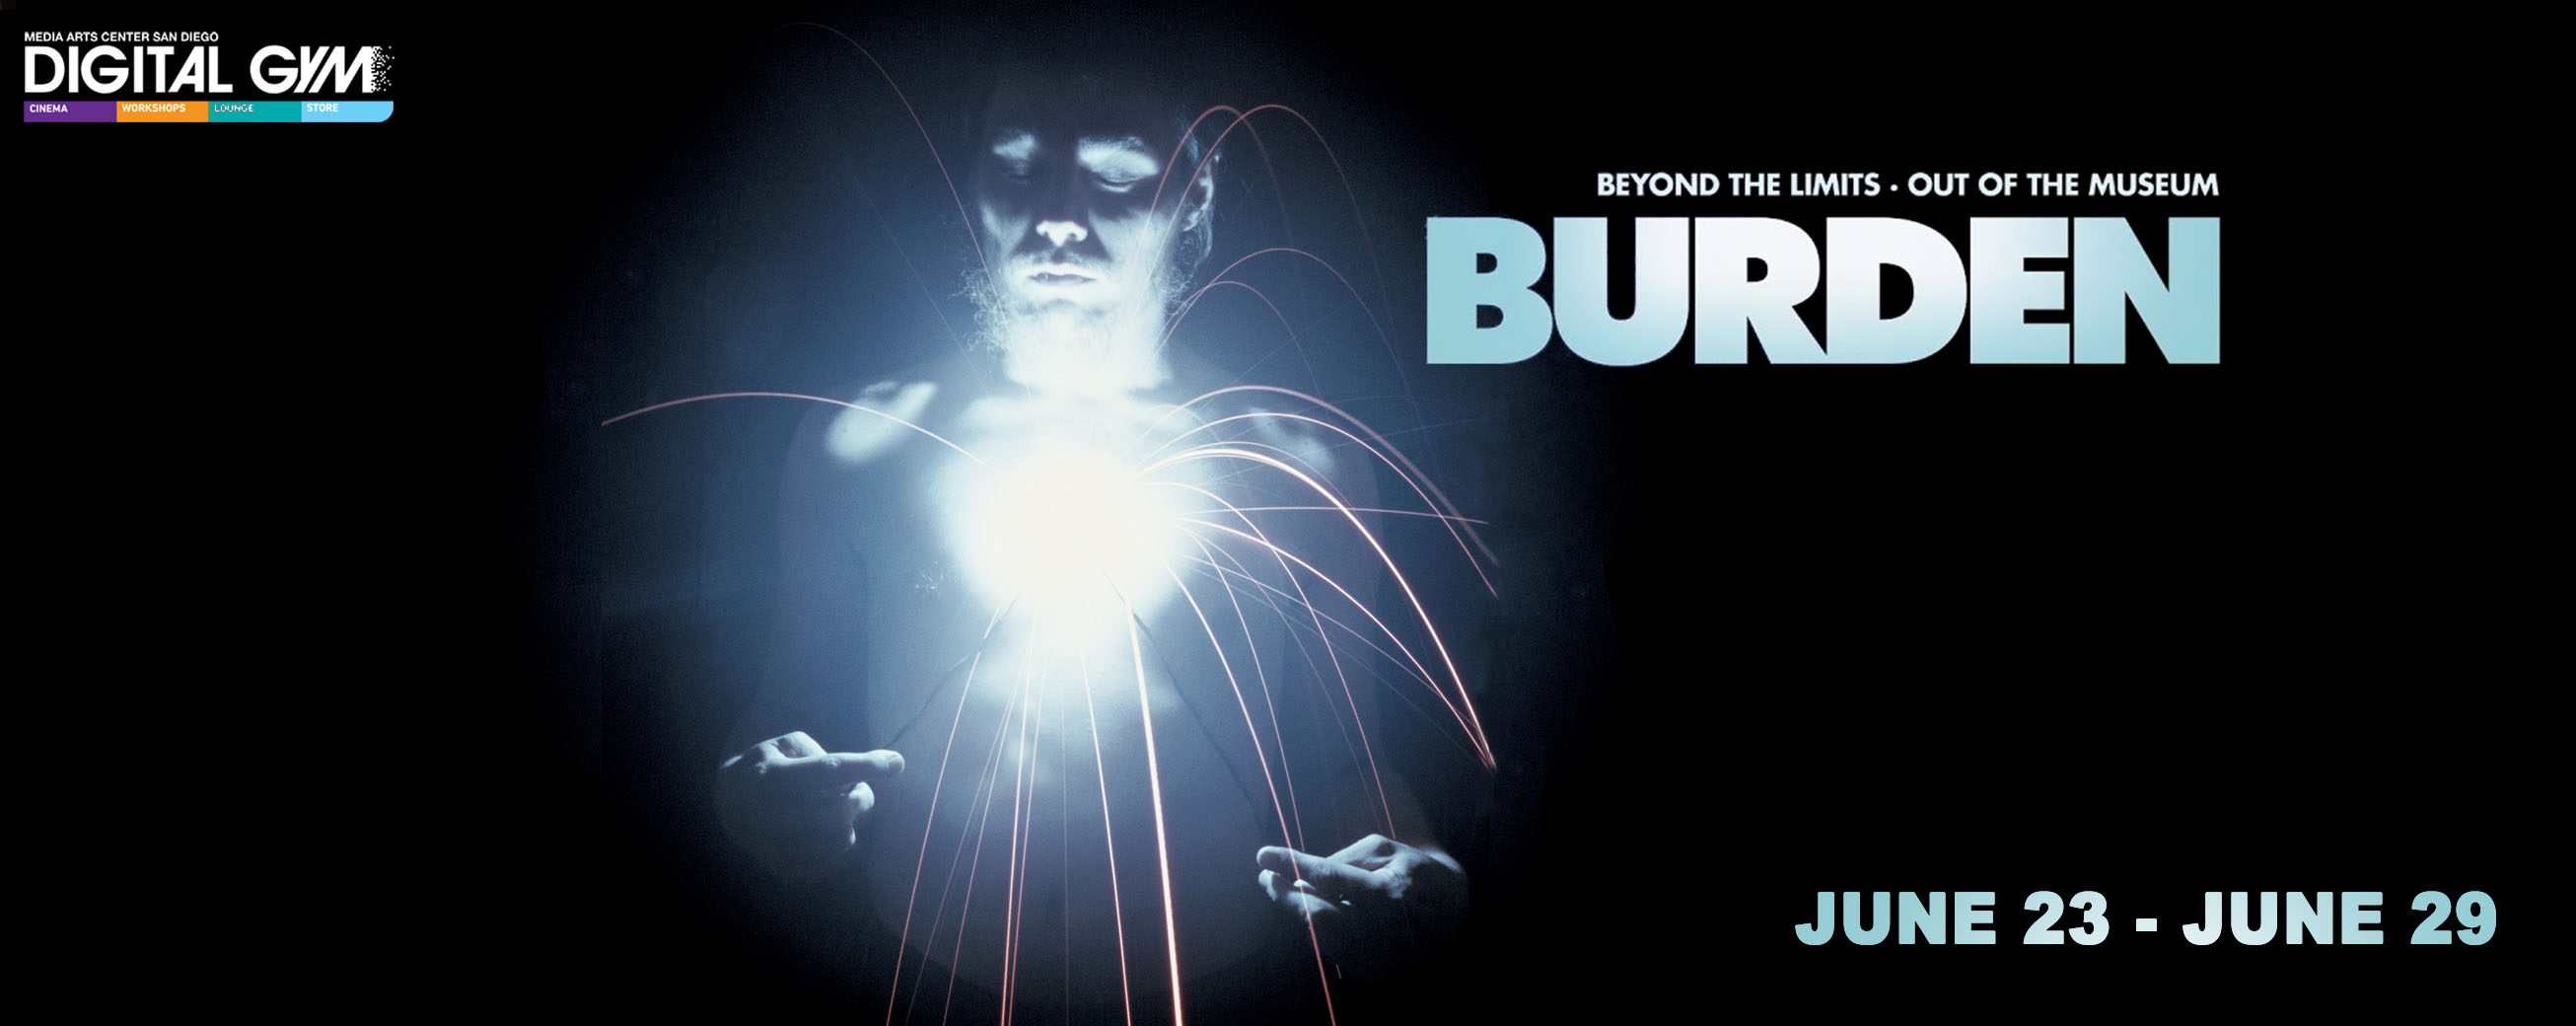 Burden – Documentary on artist Chris Burden (June 23 – June 29)